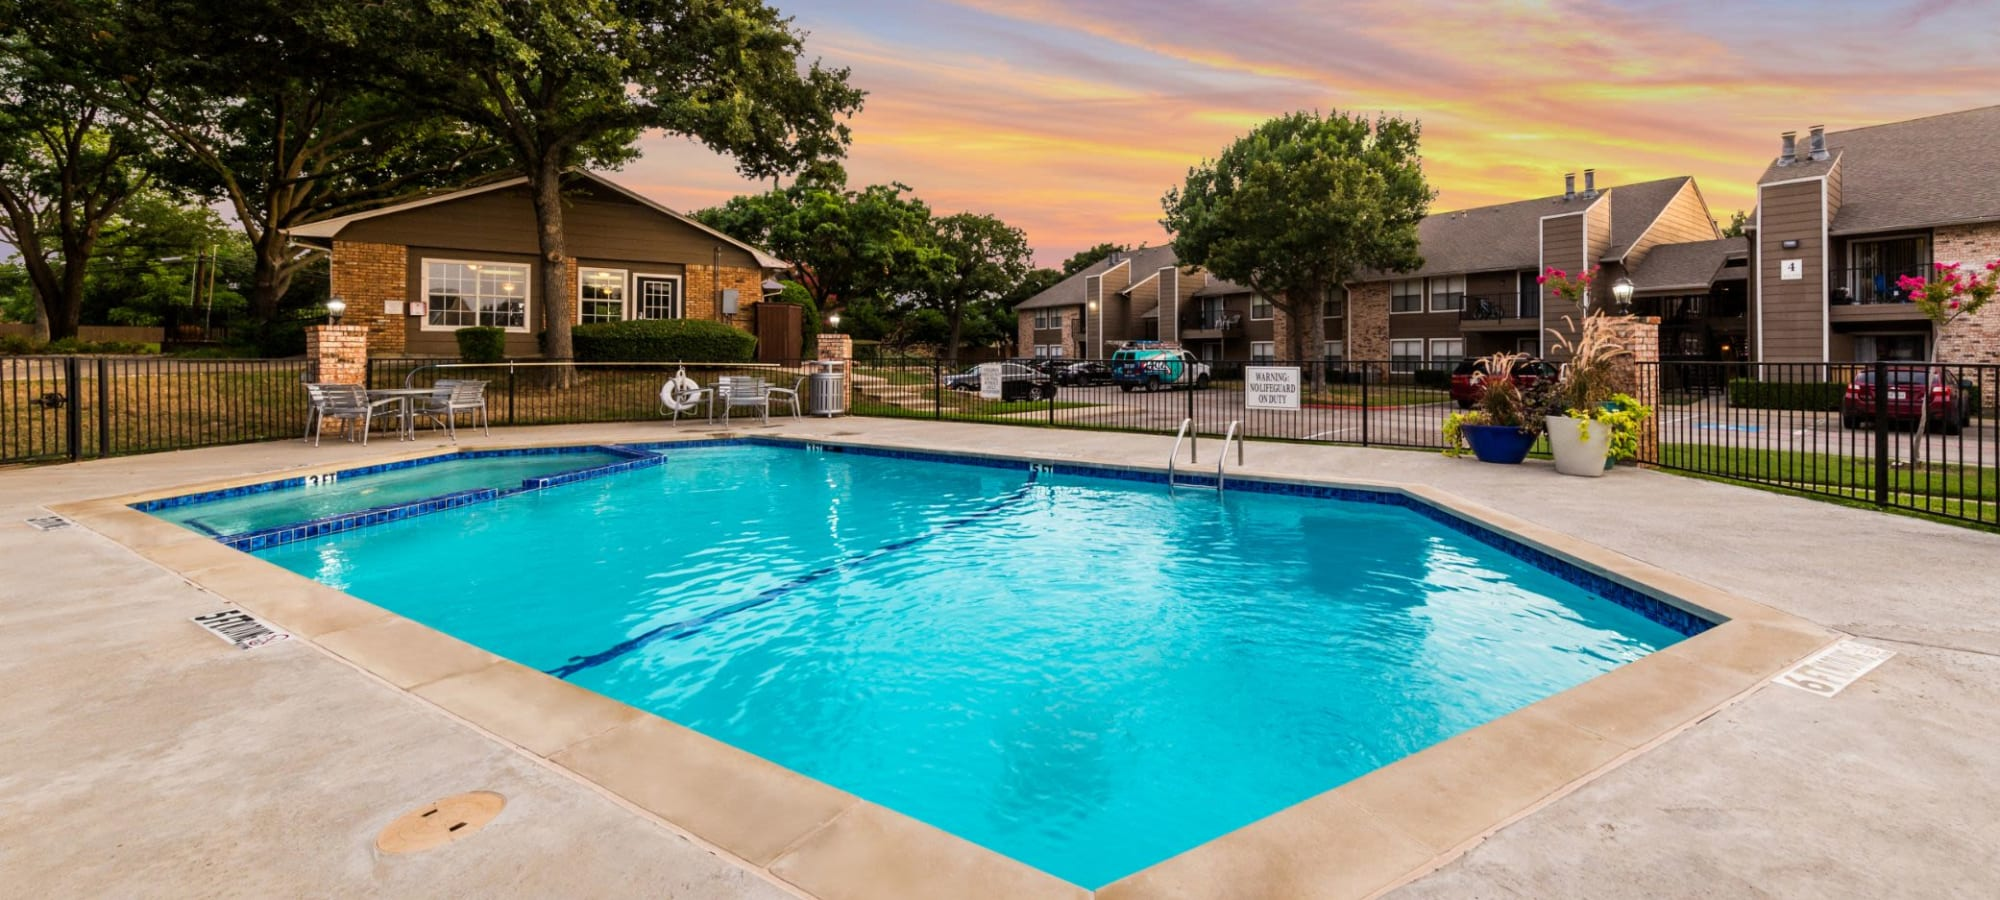 Apartments at The Park at Flower Mound in Flower Mound, Texas